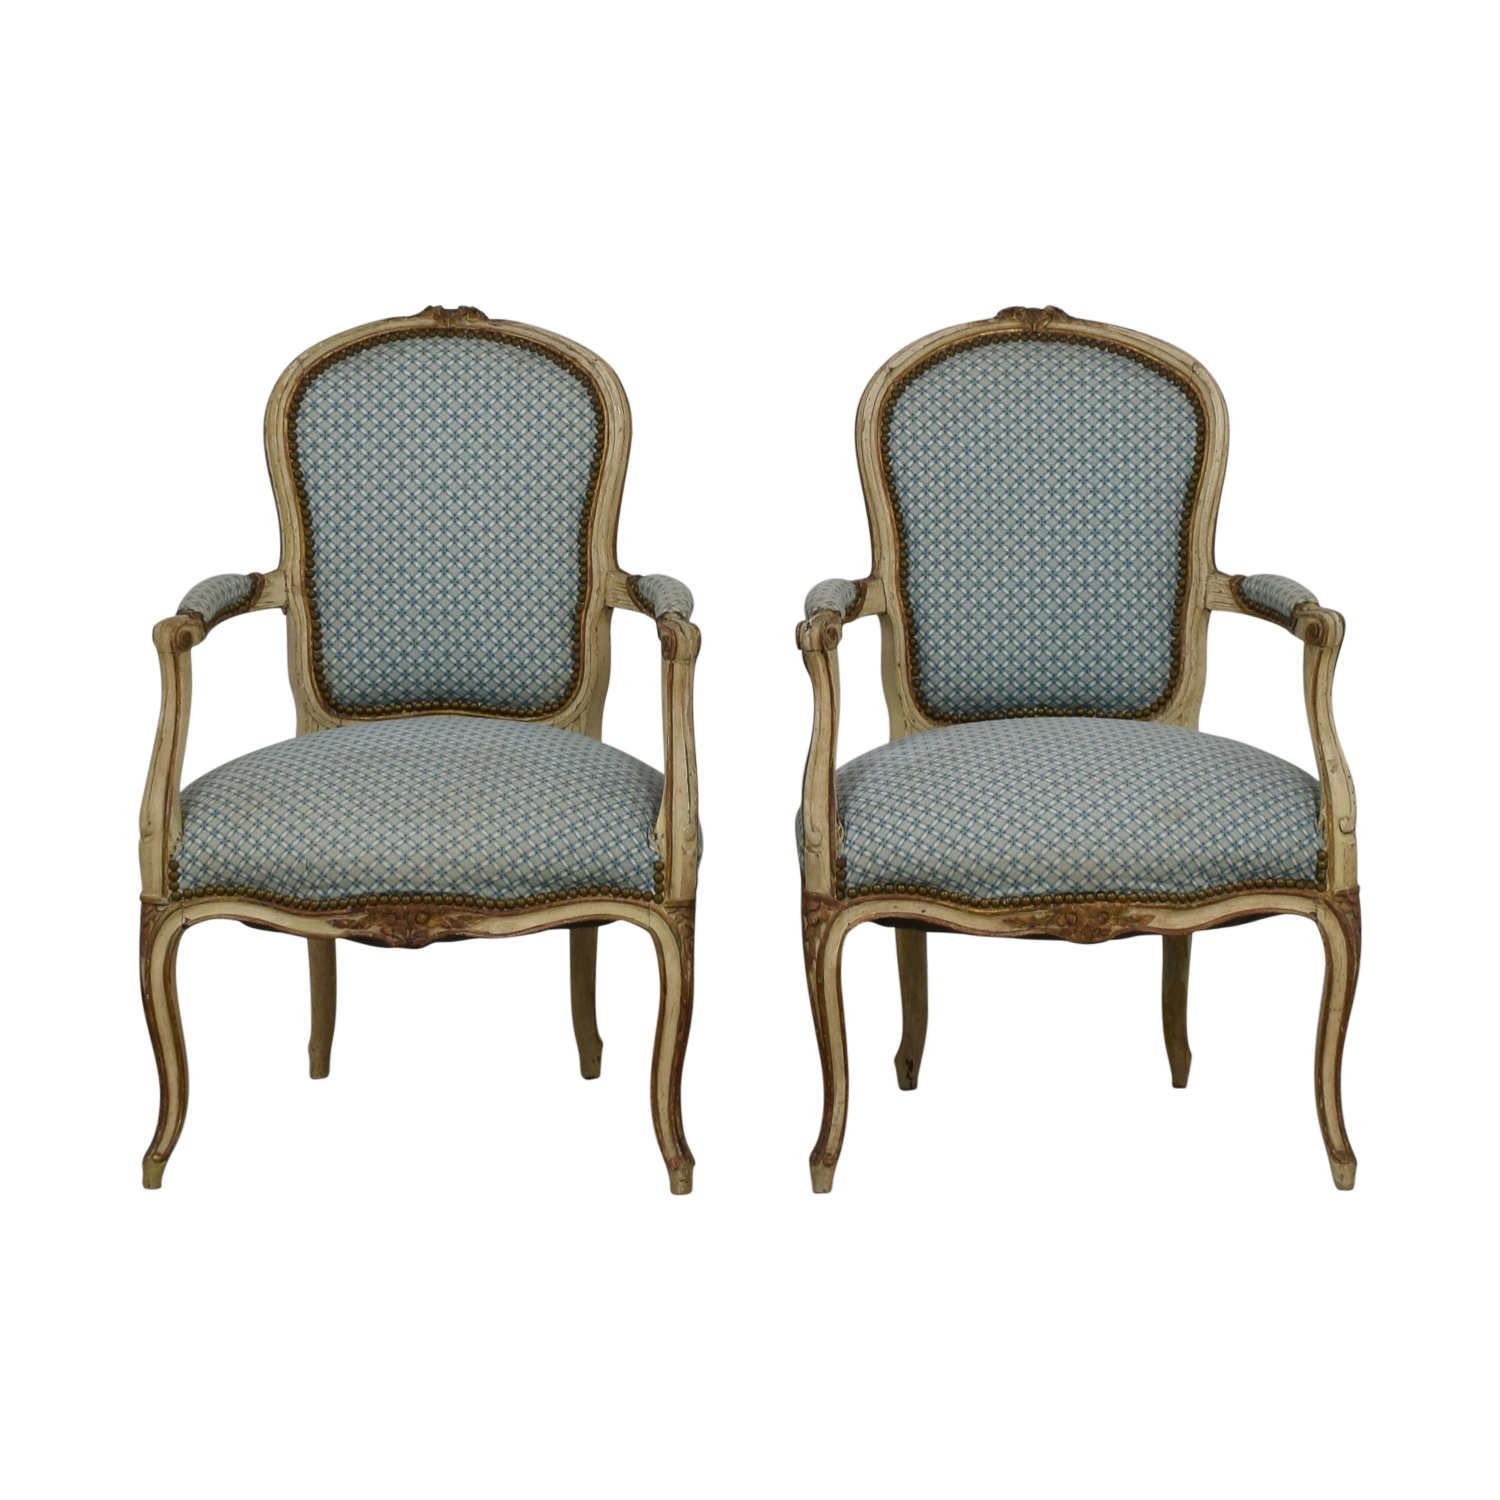 Furniture Masters Furniture Masters Blue and White Accent Chairs price